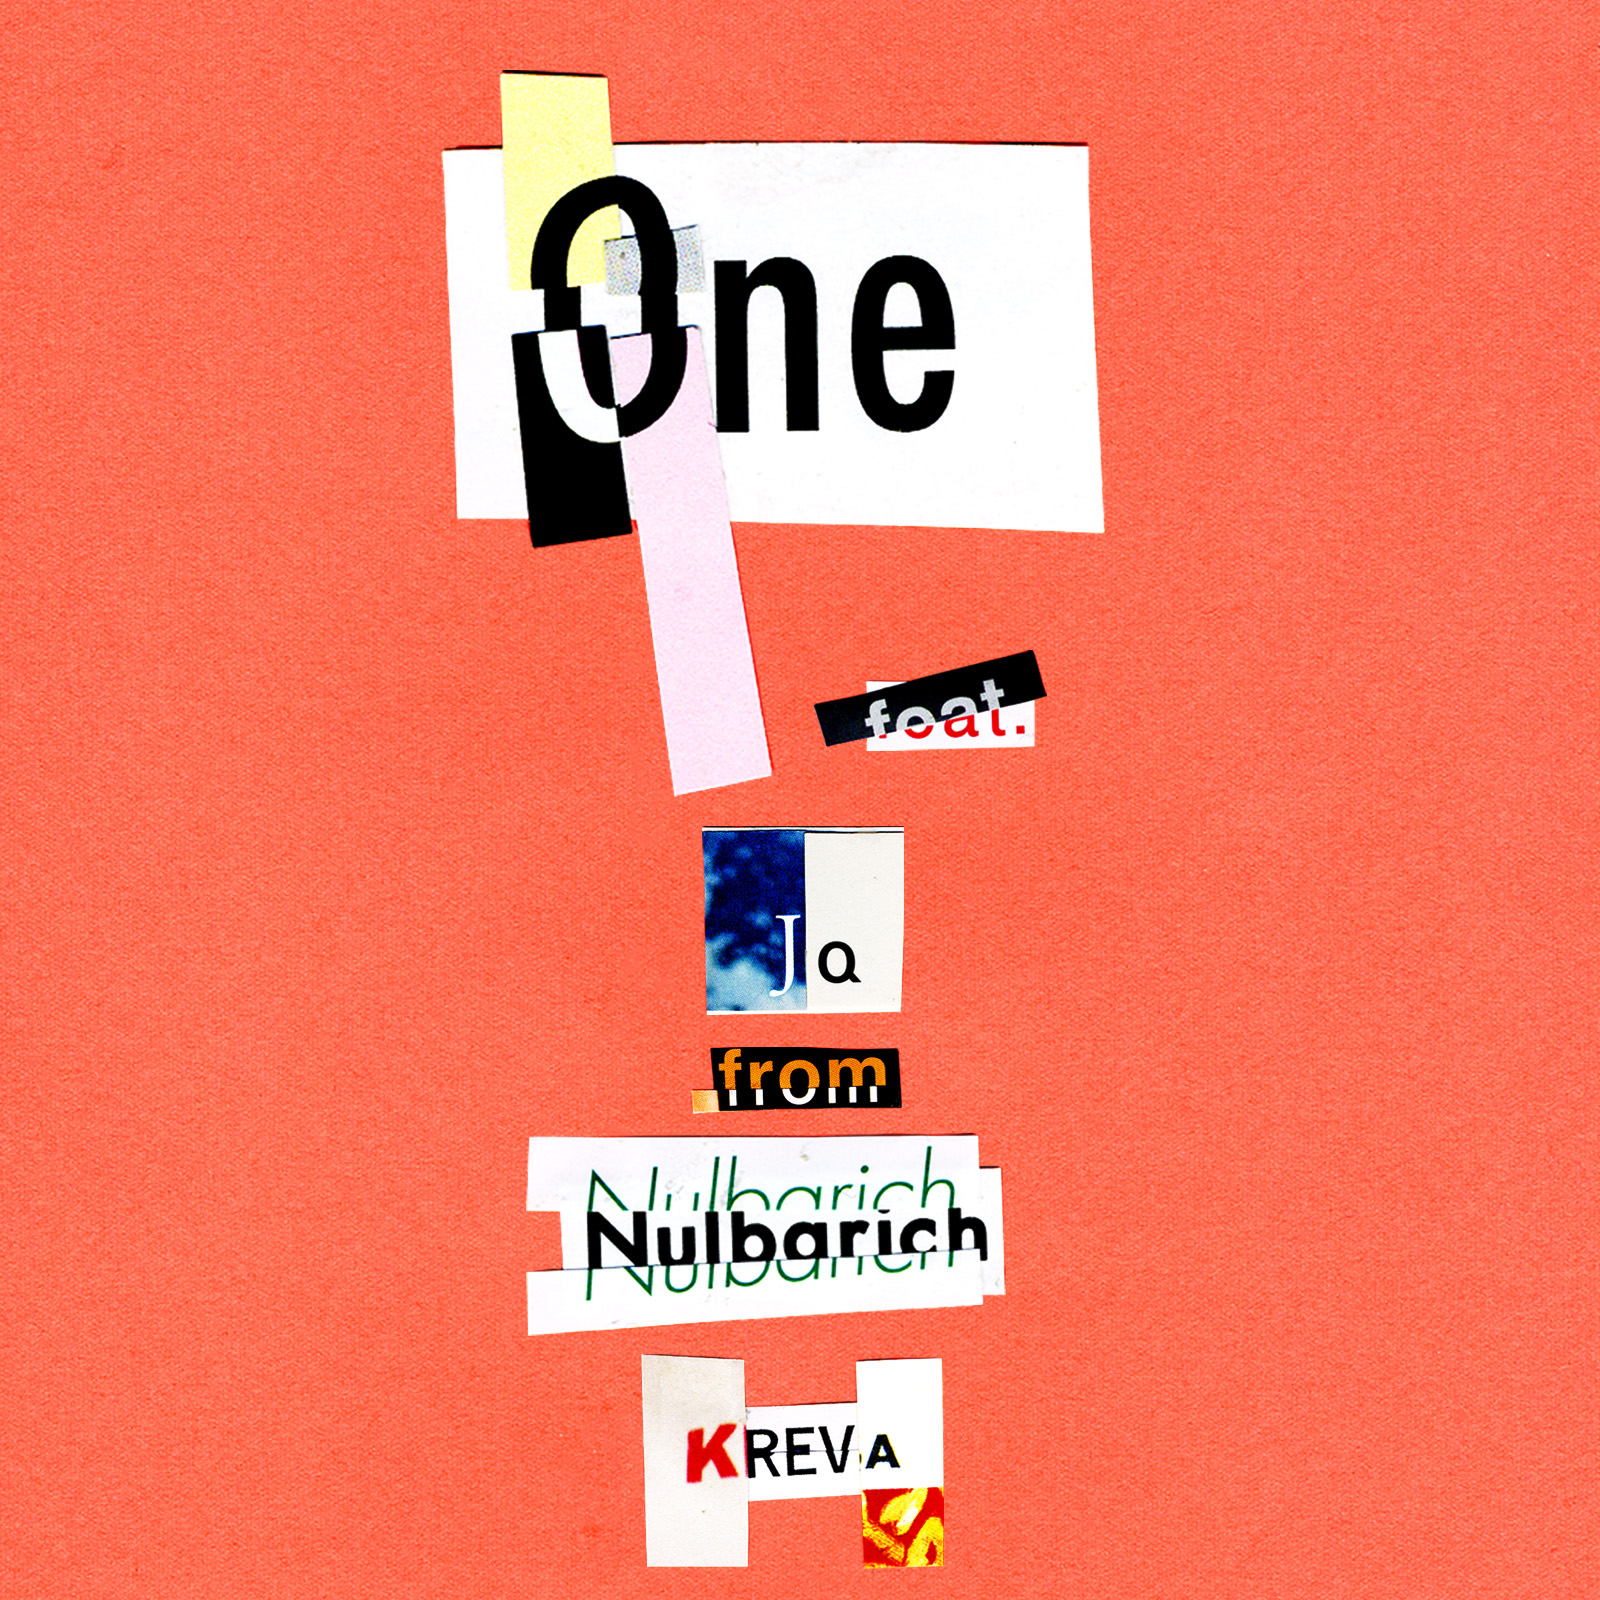 KREVA Digital New Song 「One feat. JQ from Nulbarich」